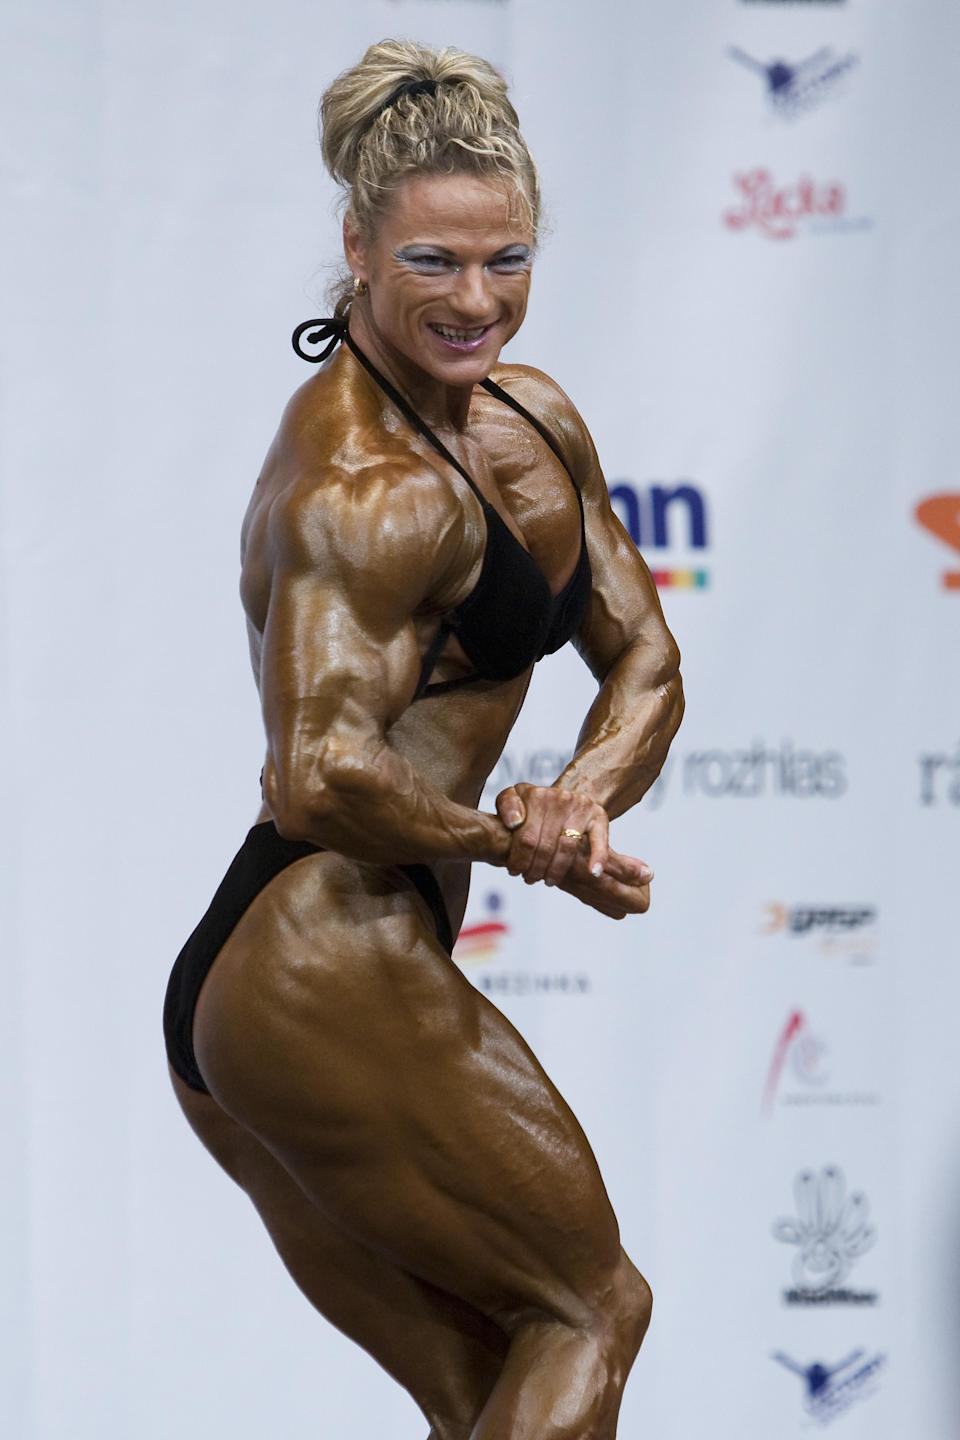 "<div class=""caption-credit"">Photo by: Tomas Hudcovic/isifa/Getty Images</div><p> The darker, more bronzed the tan, the sharper the muscle striations appear. That may win points with the judges, but a mismatched face blows it with audience members. ""If your face doesn't match your tan that's going to work against you,"" says Colbert, ""even if you've got the body judges are looking for."" </p>"